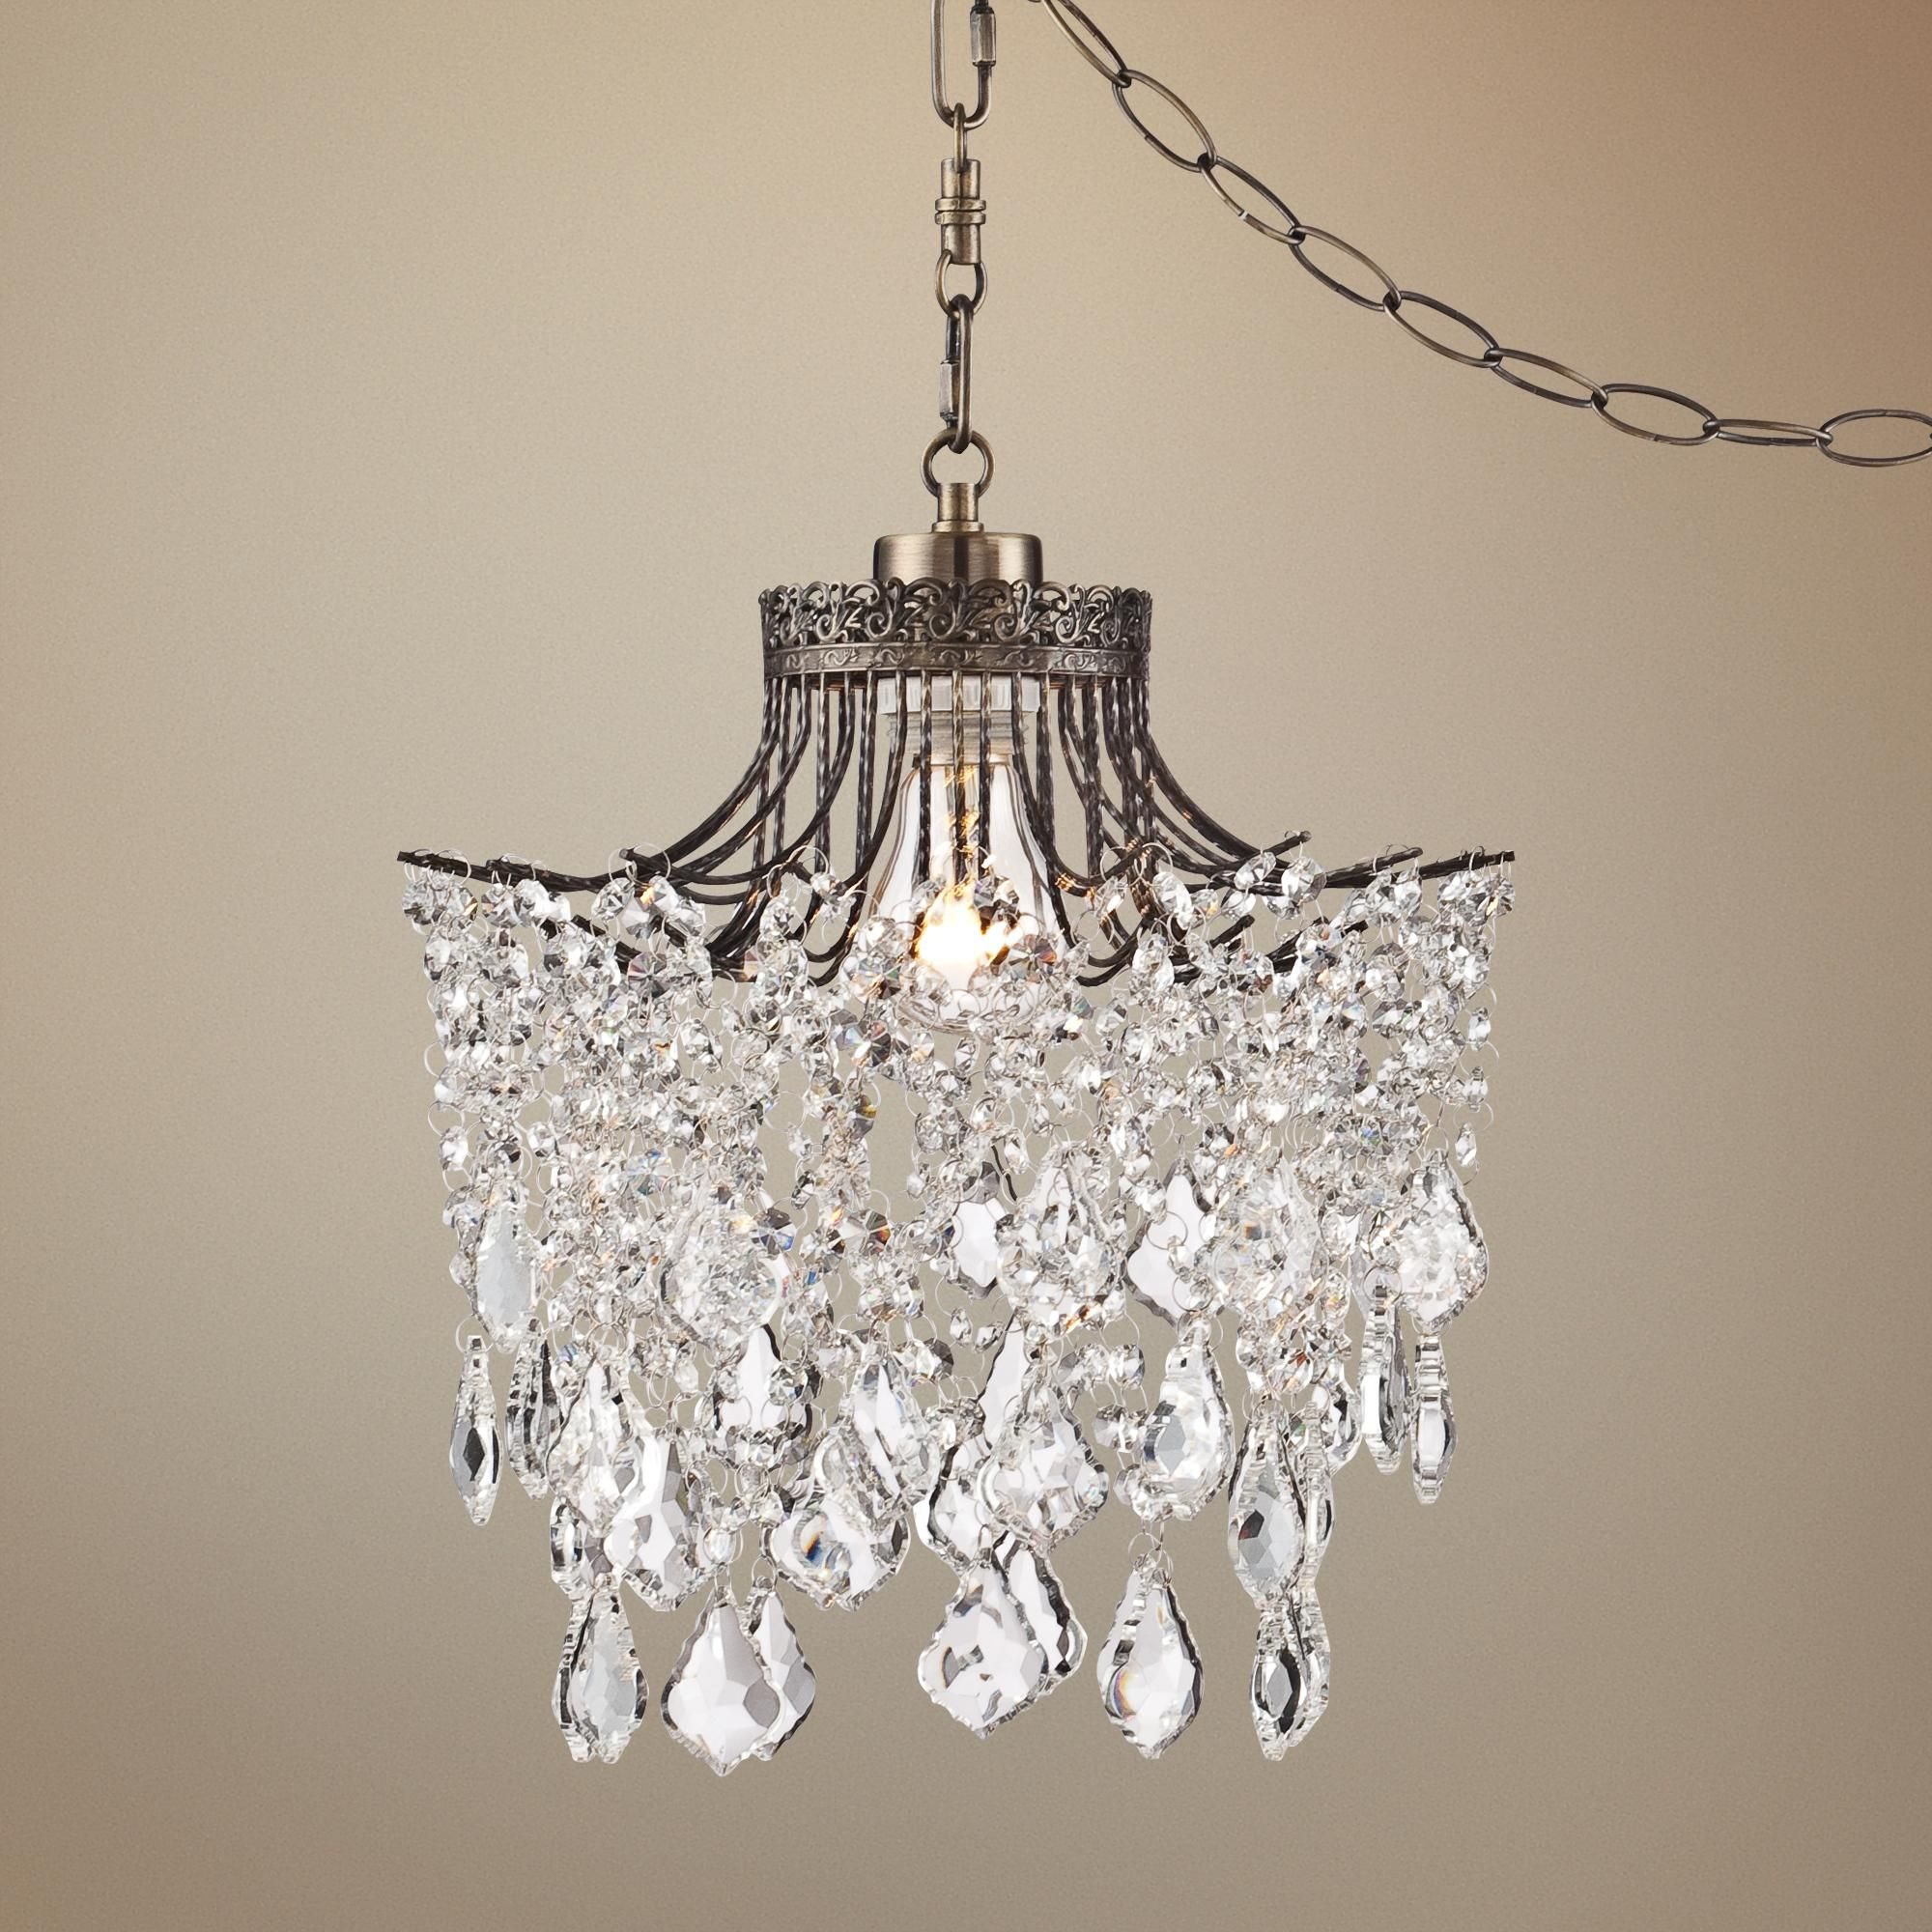 Brielle Antique Brass 12 Wide Crystal Plug In